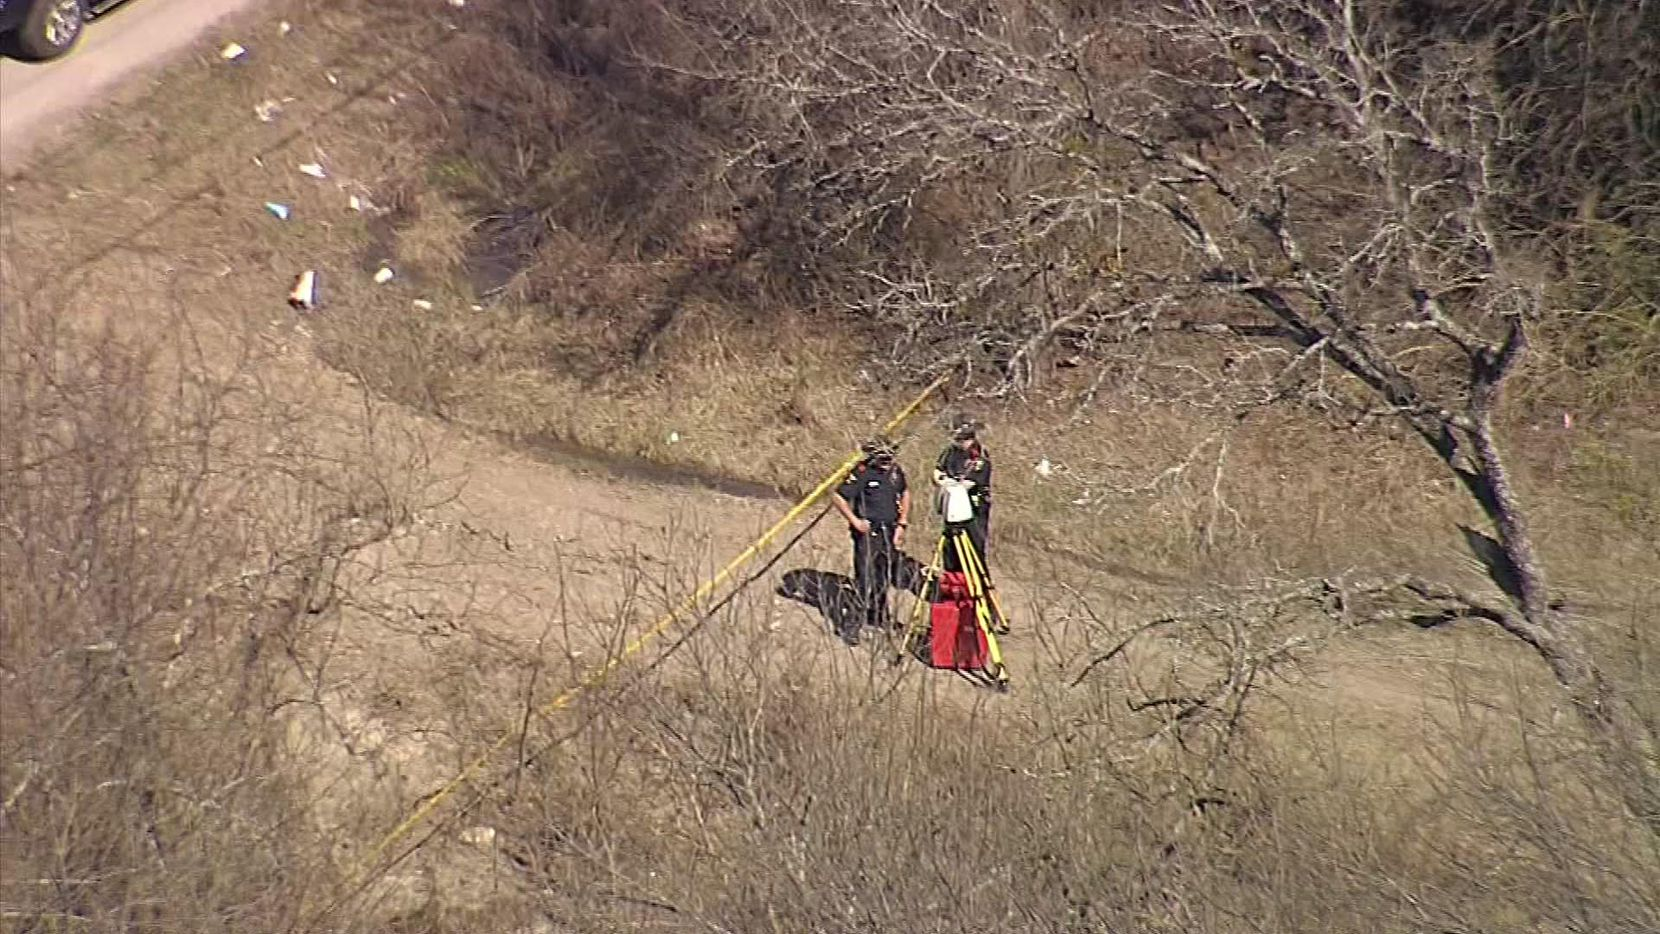 Yellow tape marked the scene where human remains were found Wednesday in Anna.